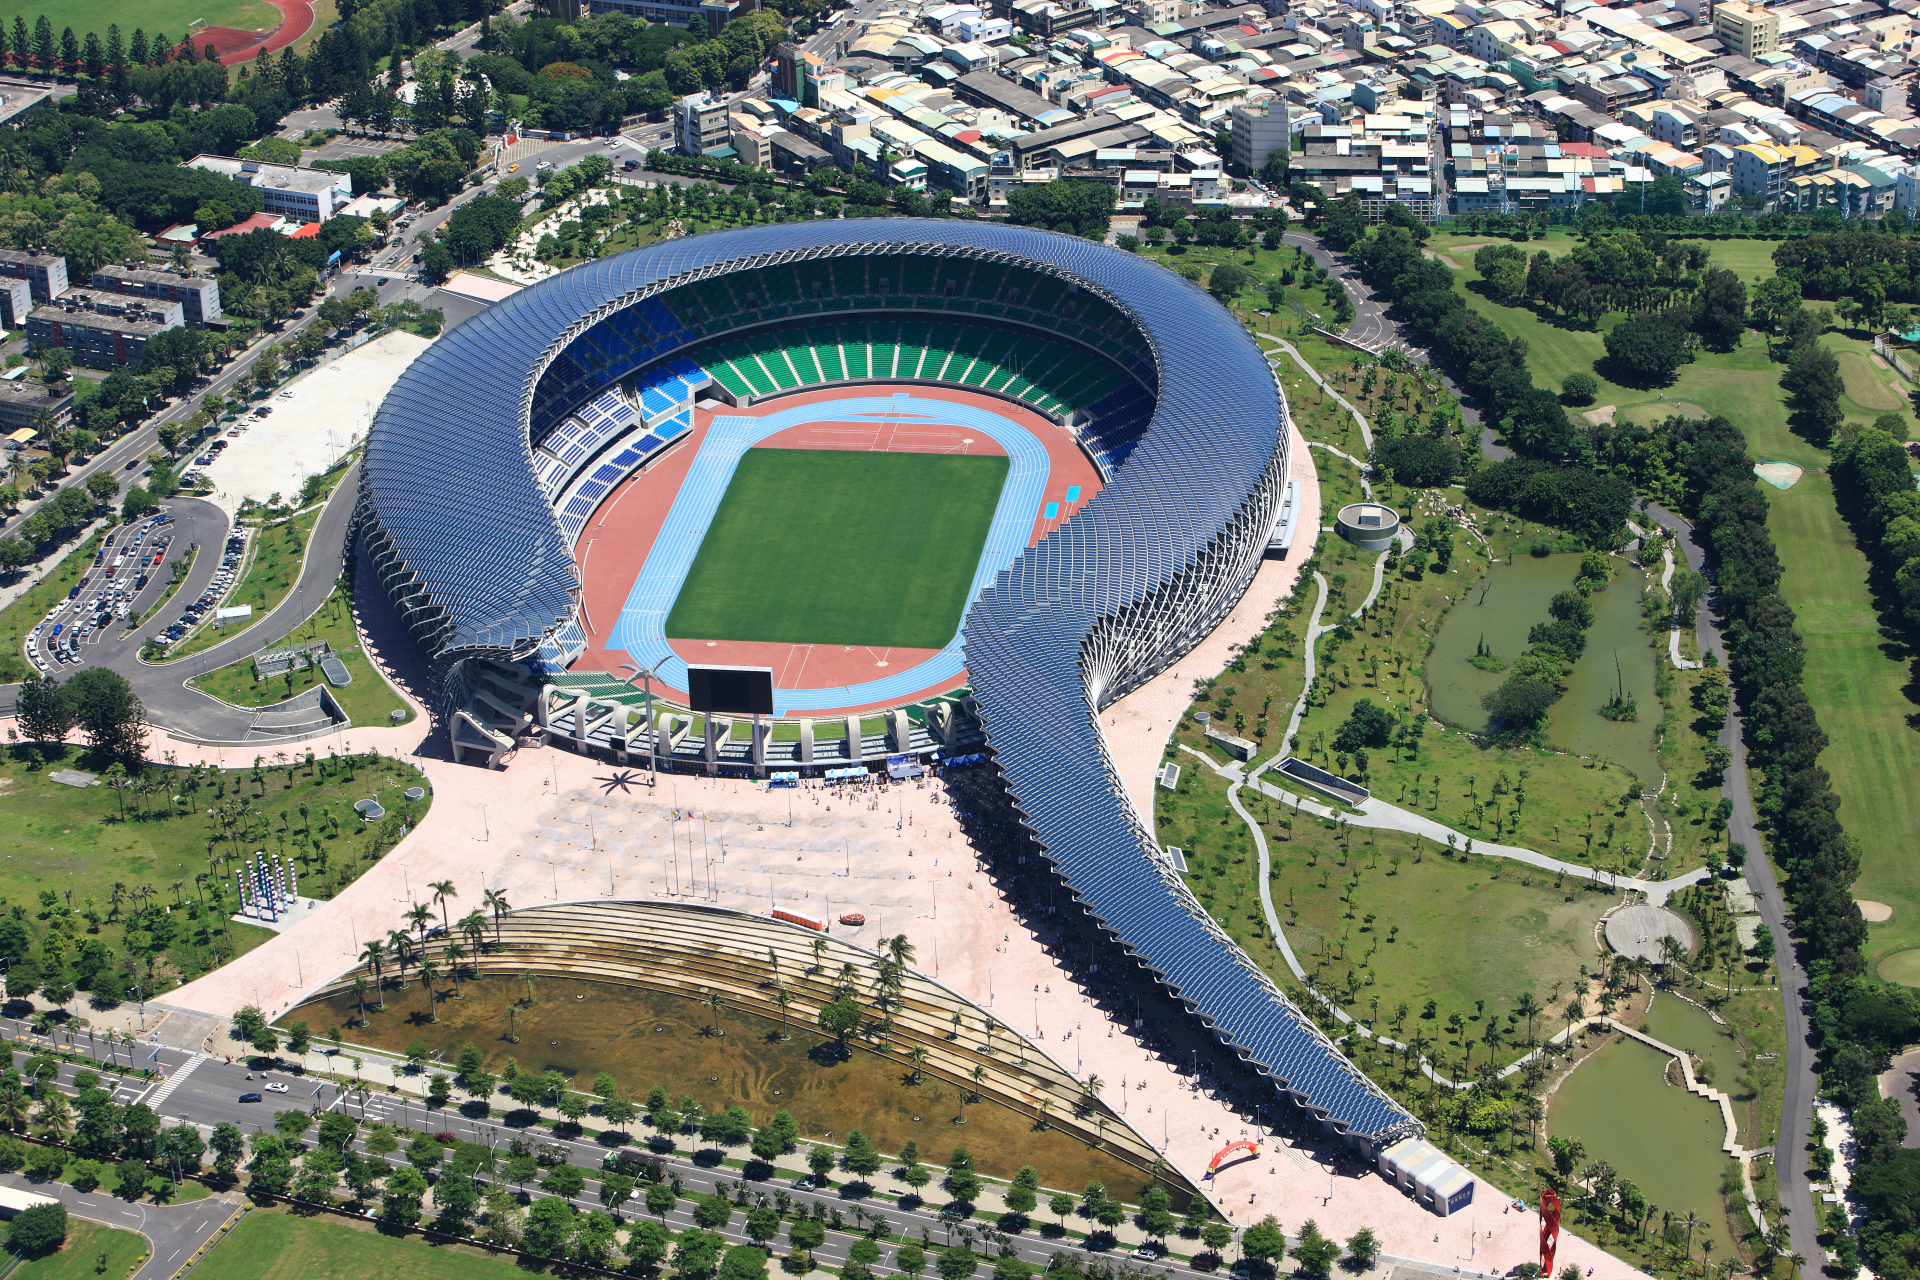 Kaohsiung World Games Stadium(Zuoying District)